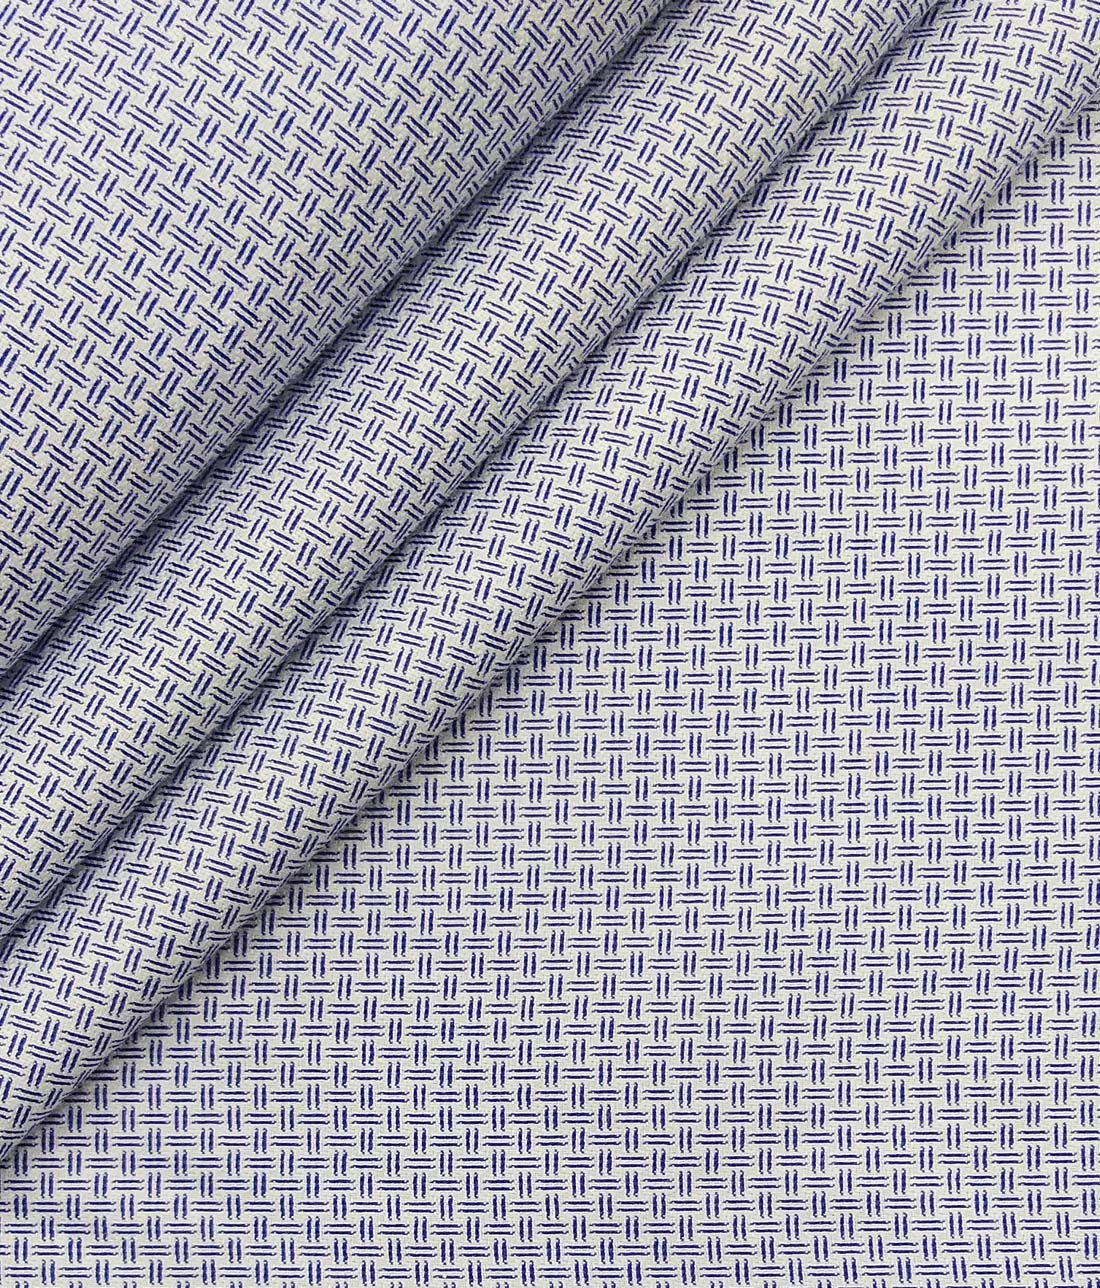 e9e6e3c85 Combo of Raymond Dark Blue Broad Checks Trouser Fabric With Exquisite White  Cotton Blend Structured Shirt Fabric (Unstitched)